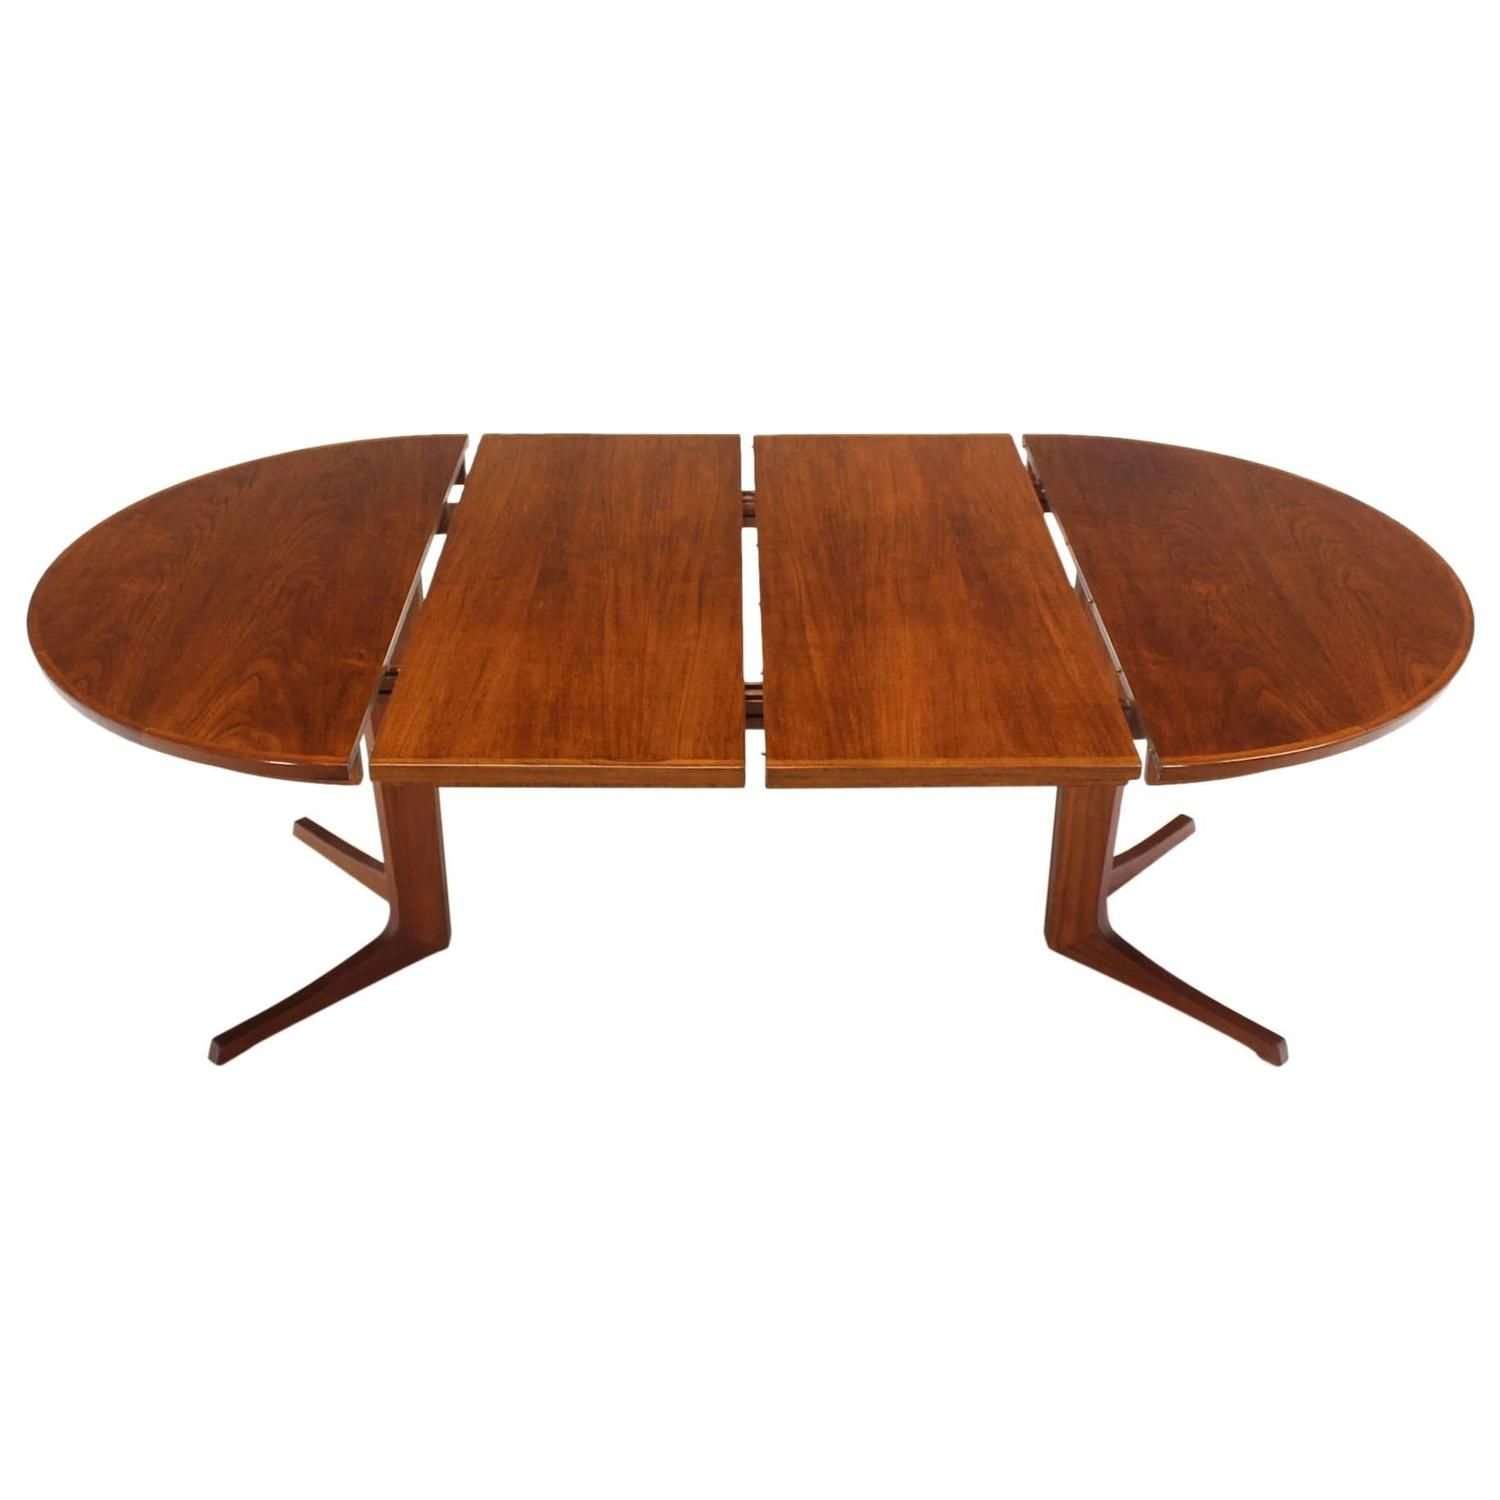 Round Danish Mid Century Modern Teak Dining Table With Two Leaves